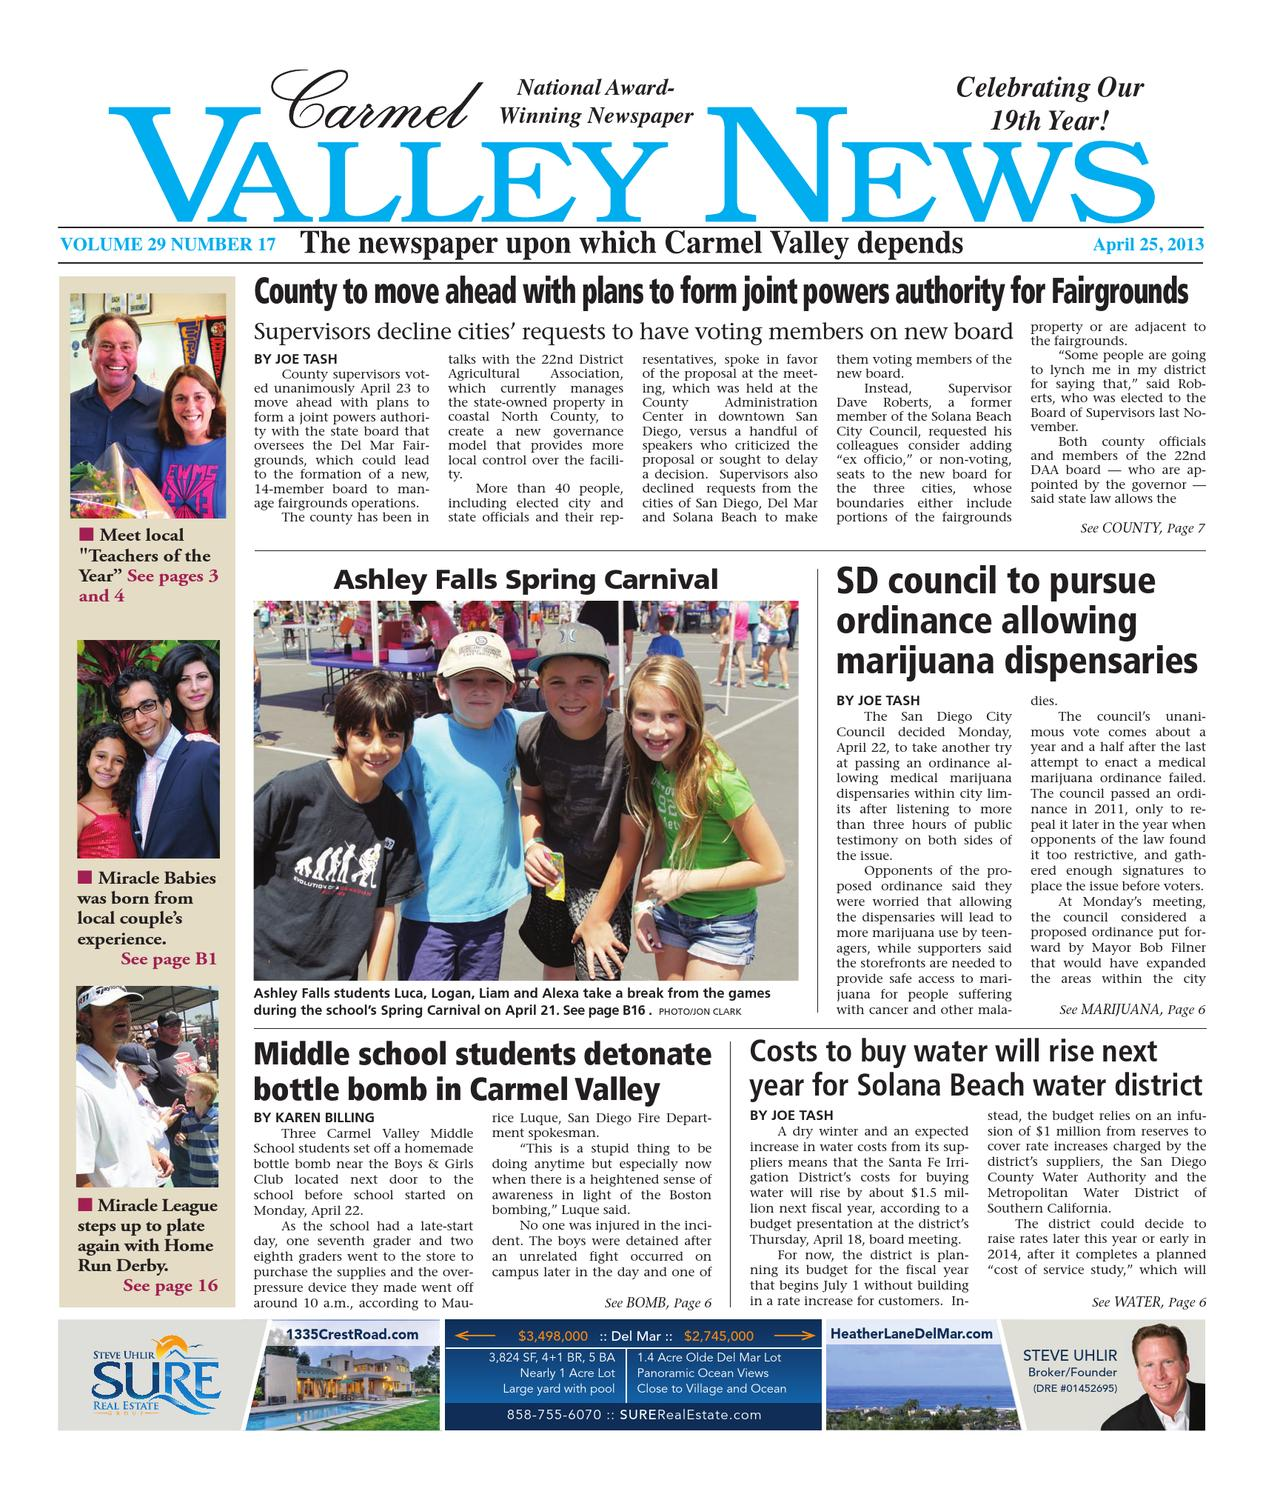 28e4c0d12 Carmel Valley News 4.25.13 by MainStreet Media - issuu